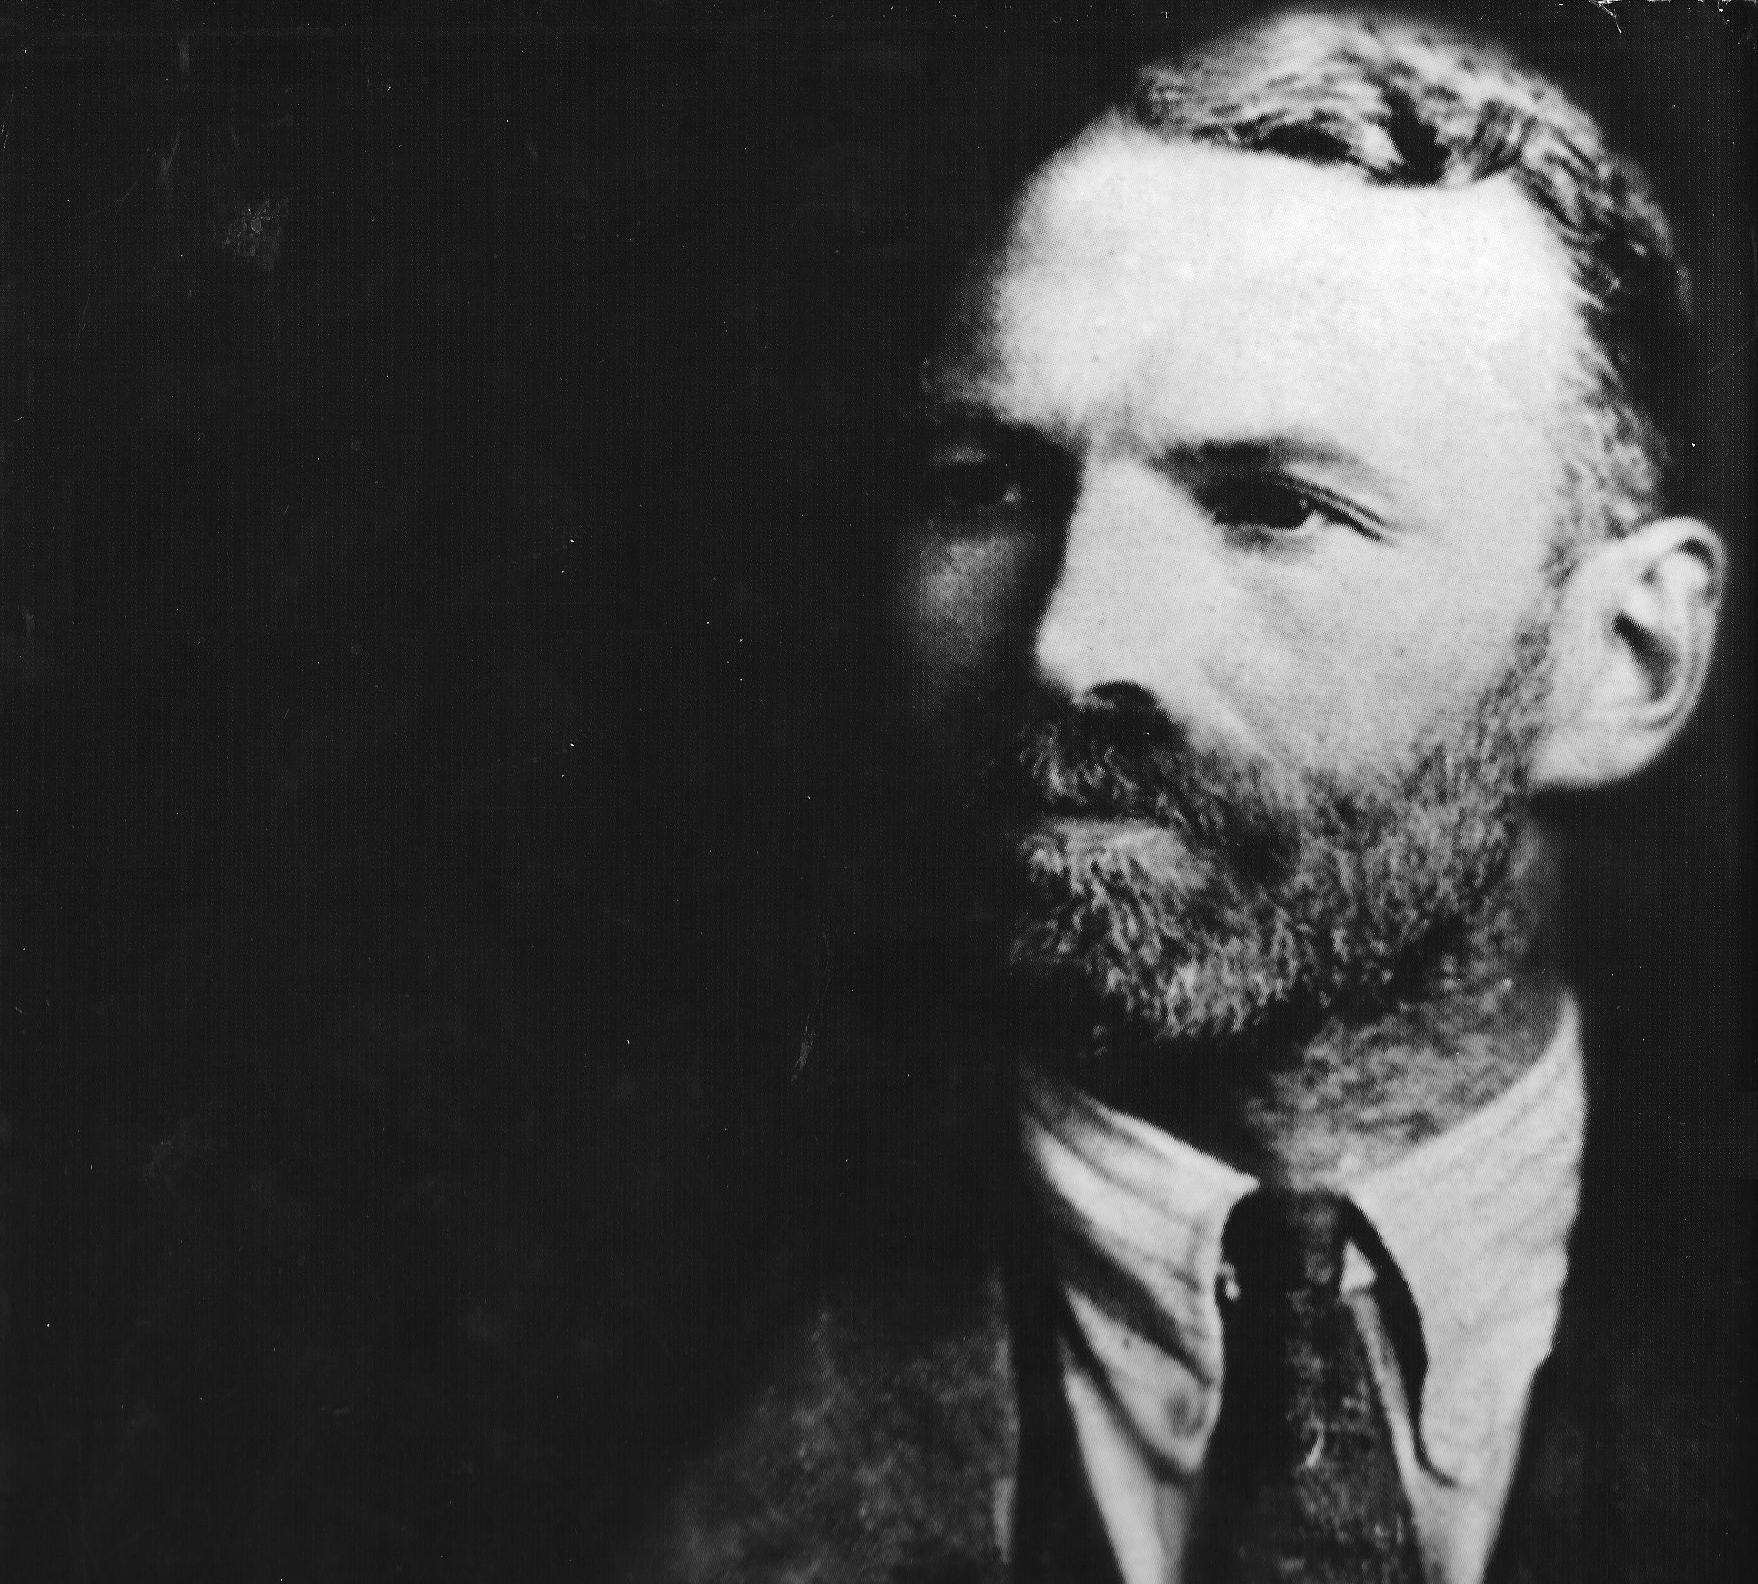 'A moderate amongst militants'<strong>The story of William X. O'Brien</strong><a HREF= /1916-easter-rising/william-x-obrien>CLICK HERE TO READ MORE</a>